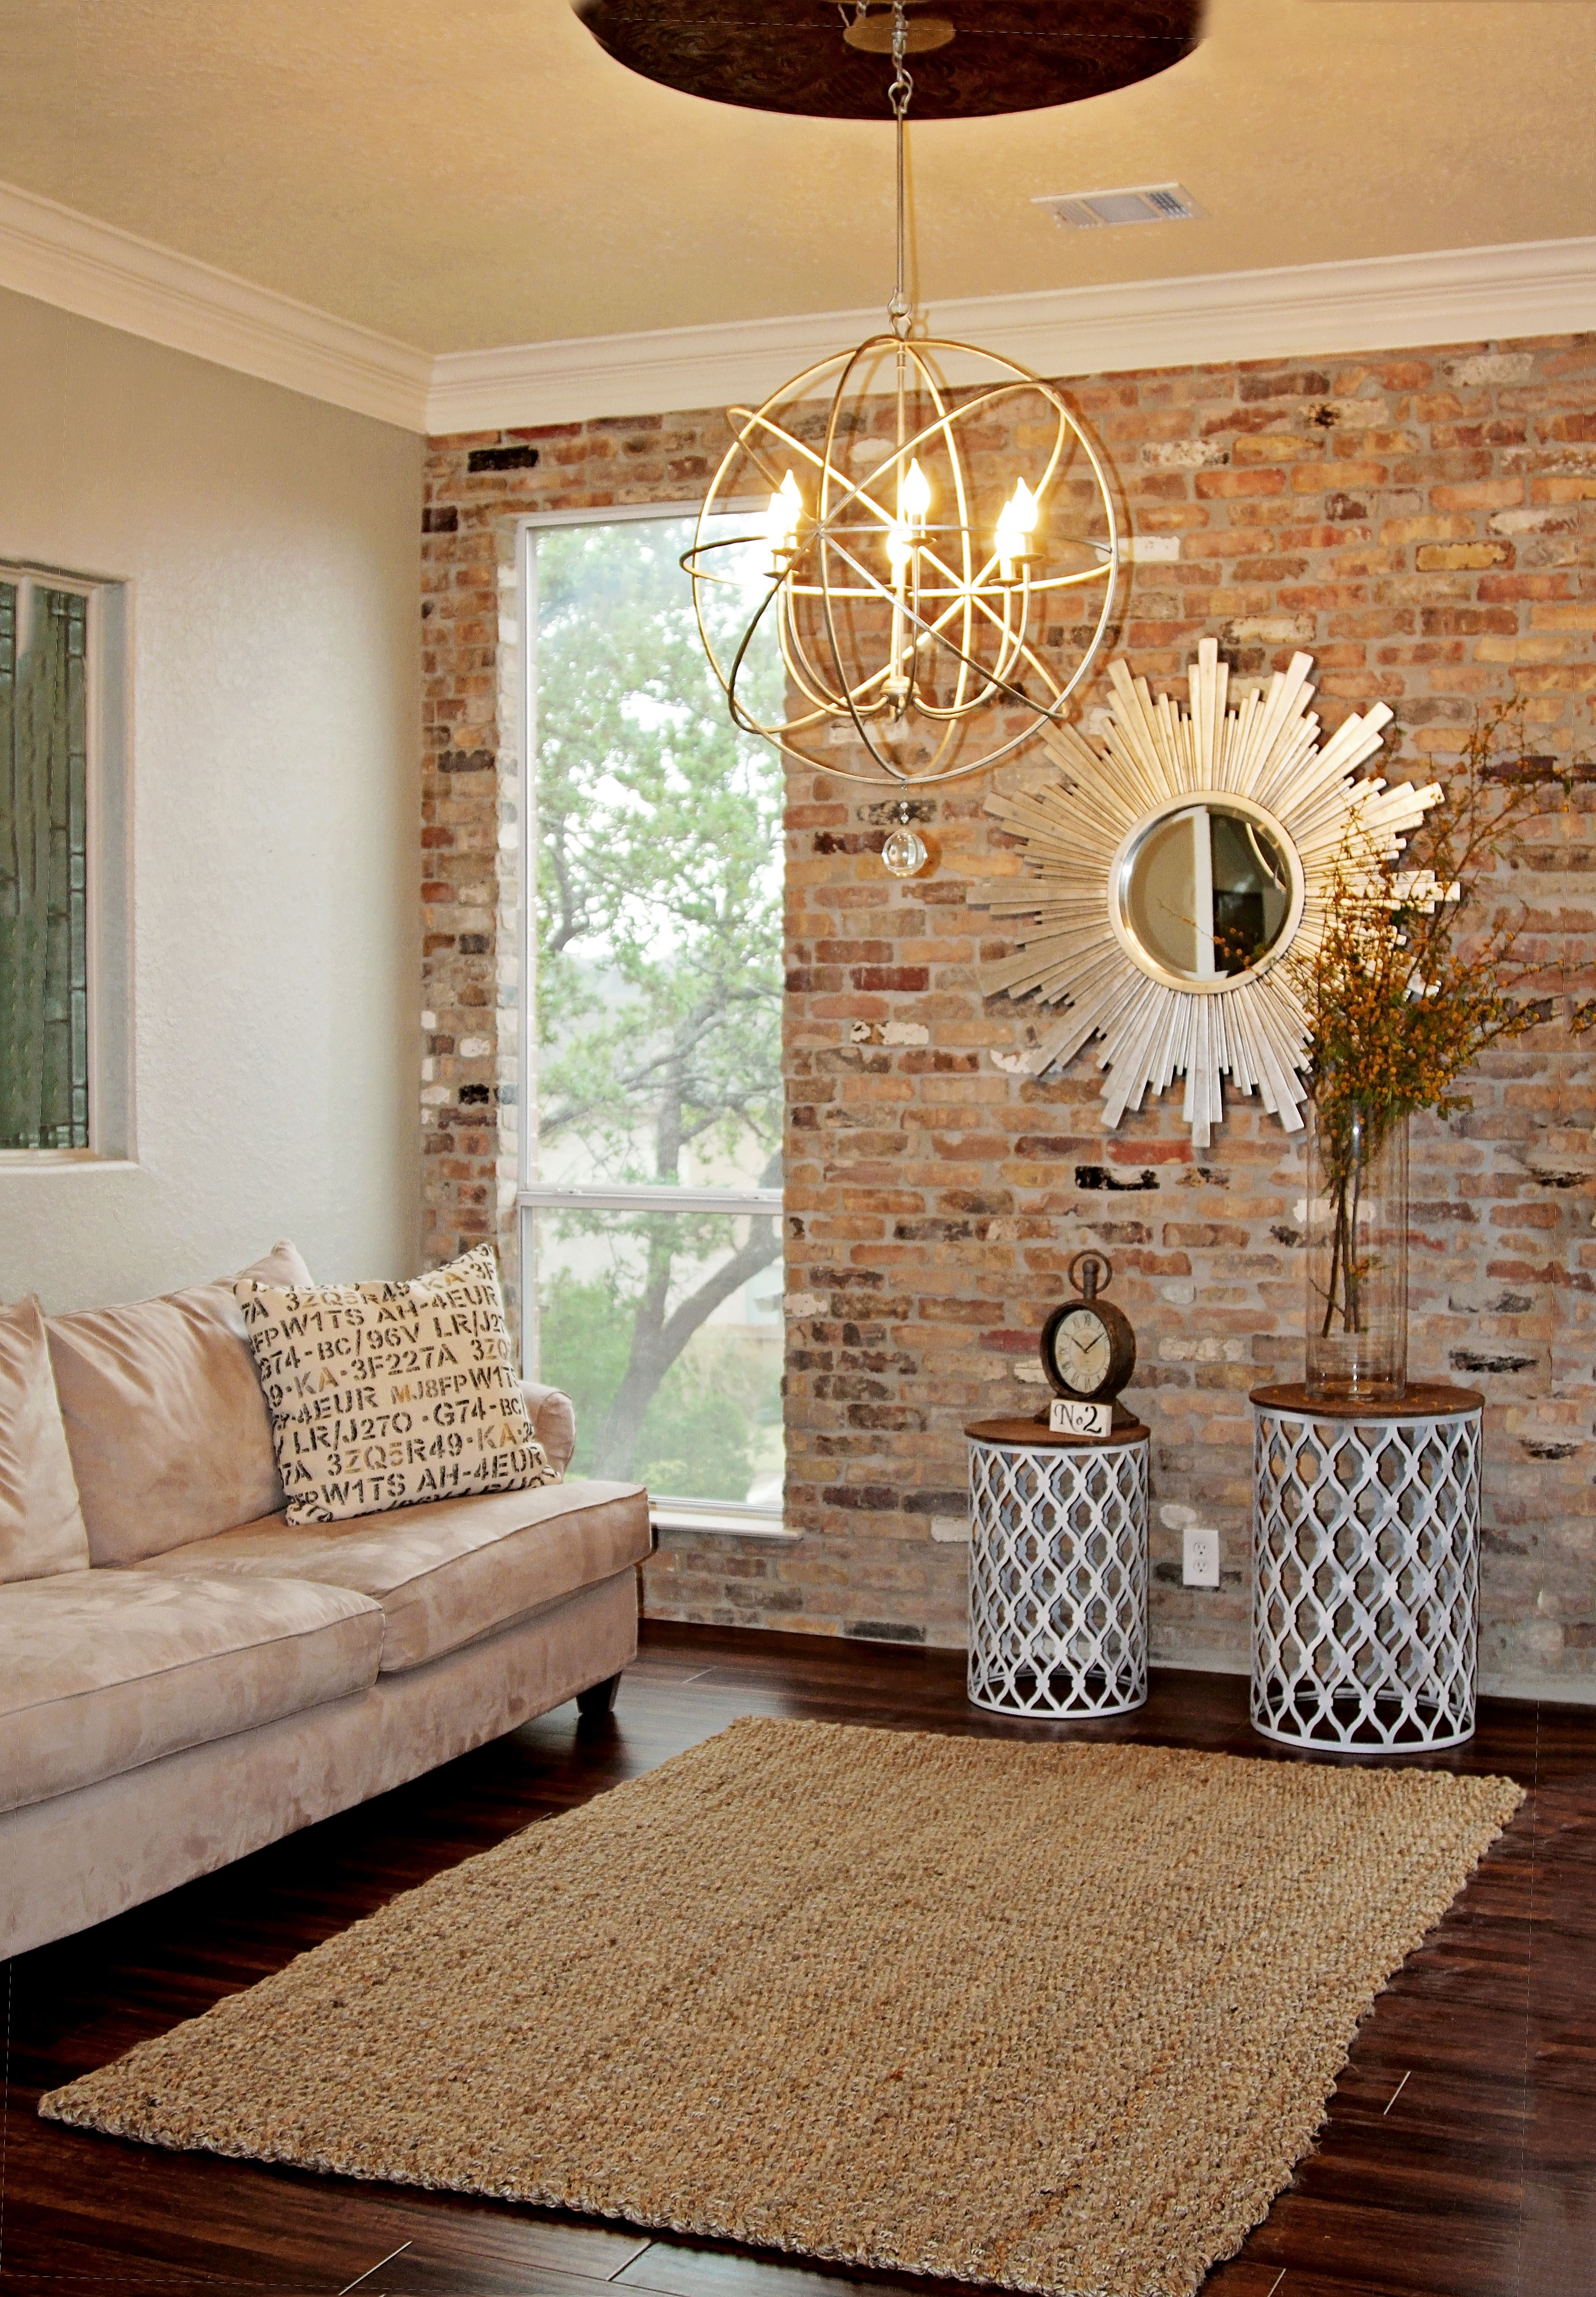 Brick Wall In Living Room Img 0003 1024X683(Pp W954 H636)